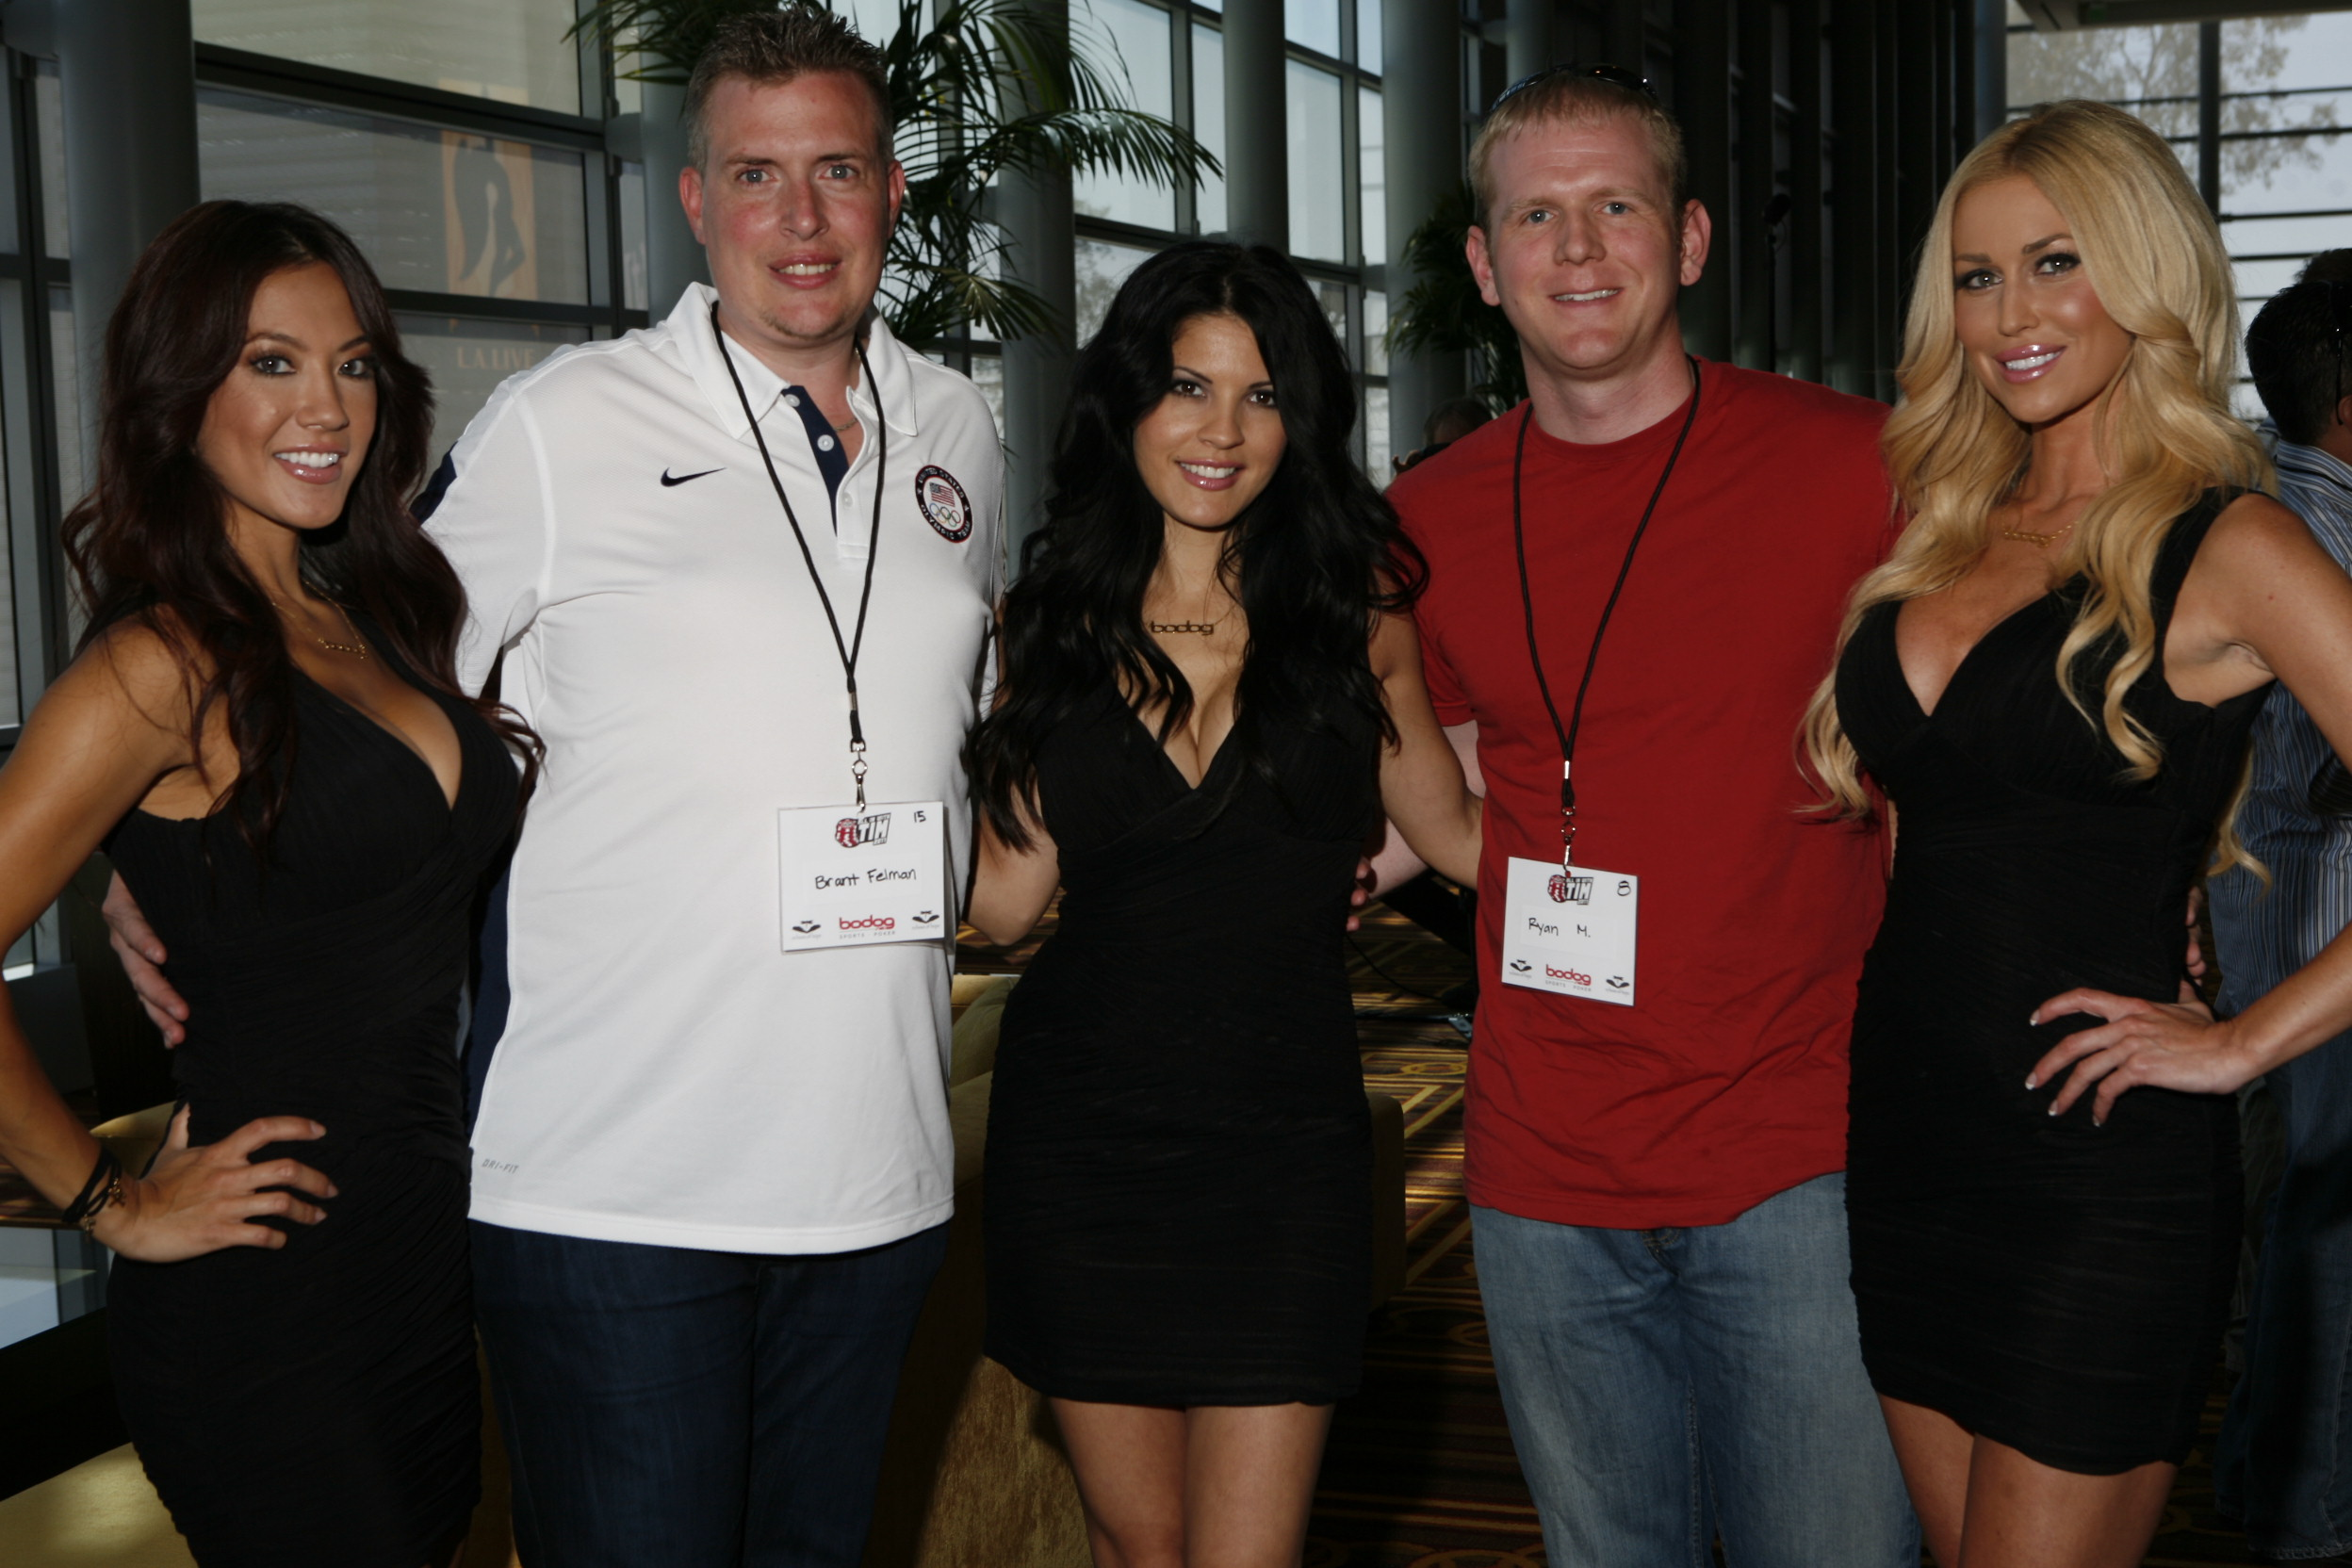 Bodog girls with players